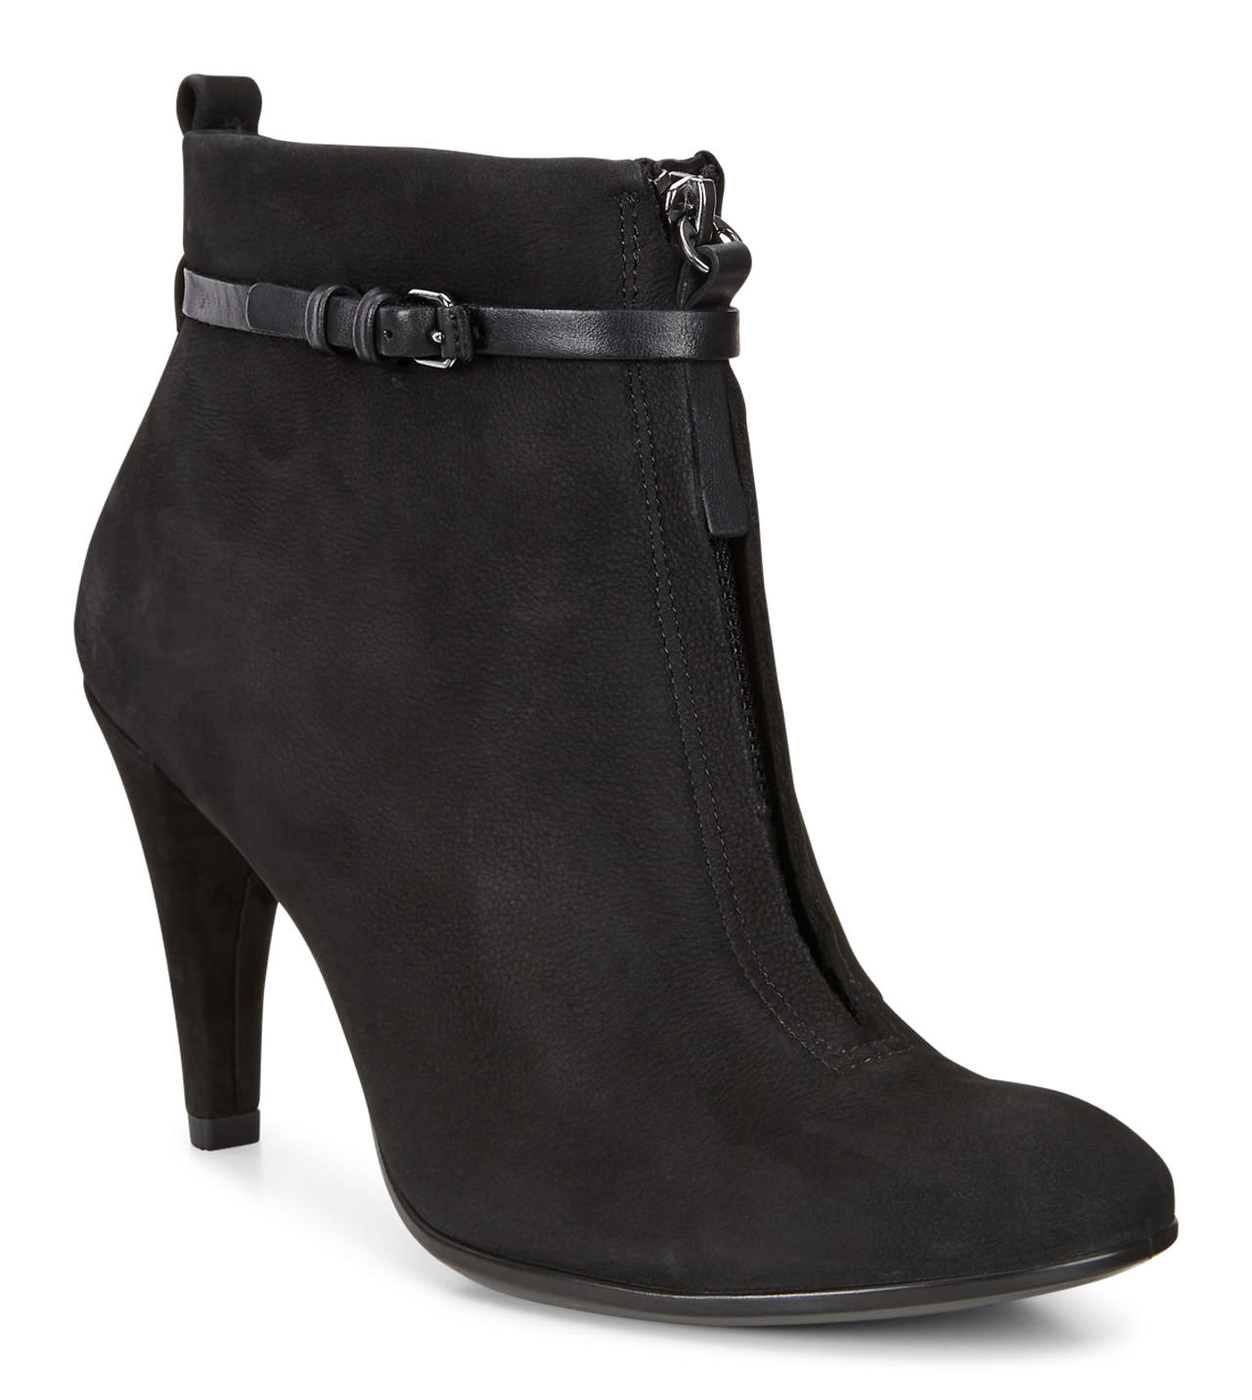 ECCO SHAPE SLEEK Ankle Boot 75mm